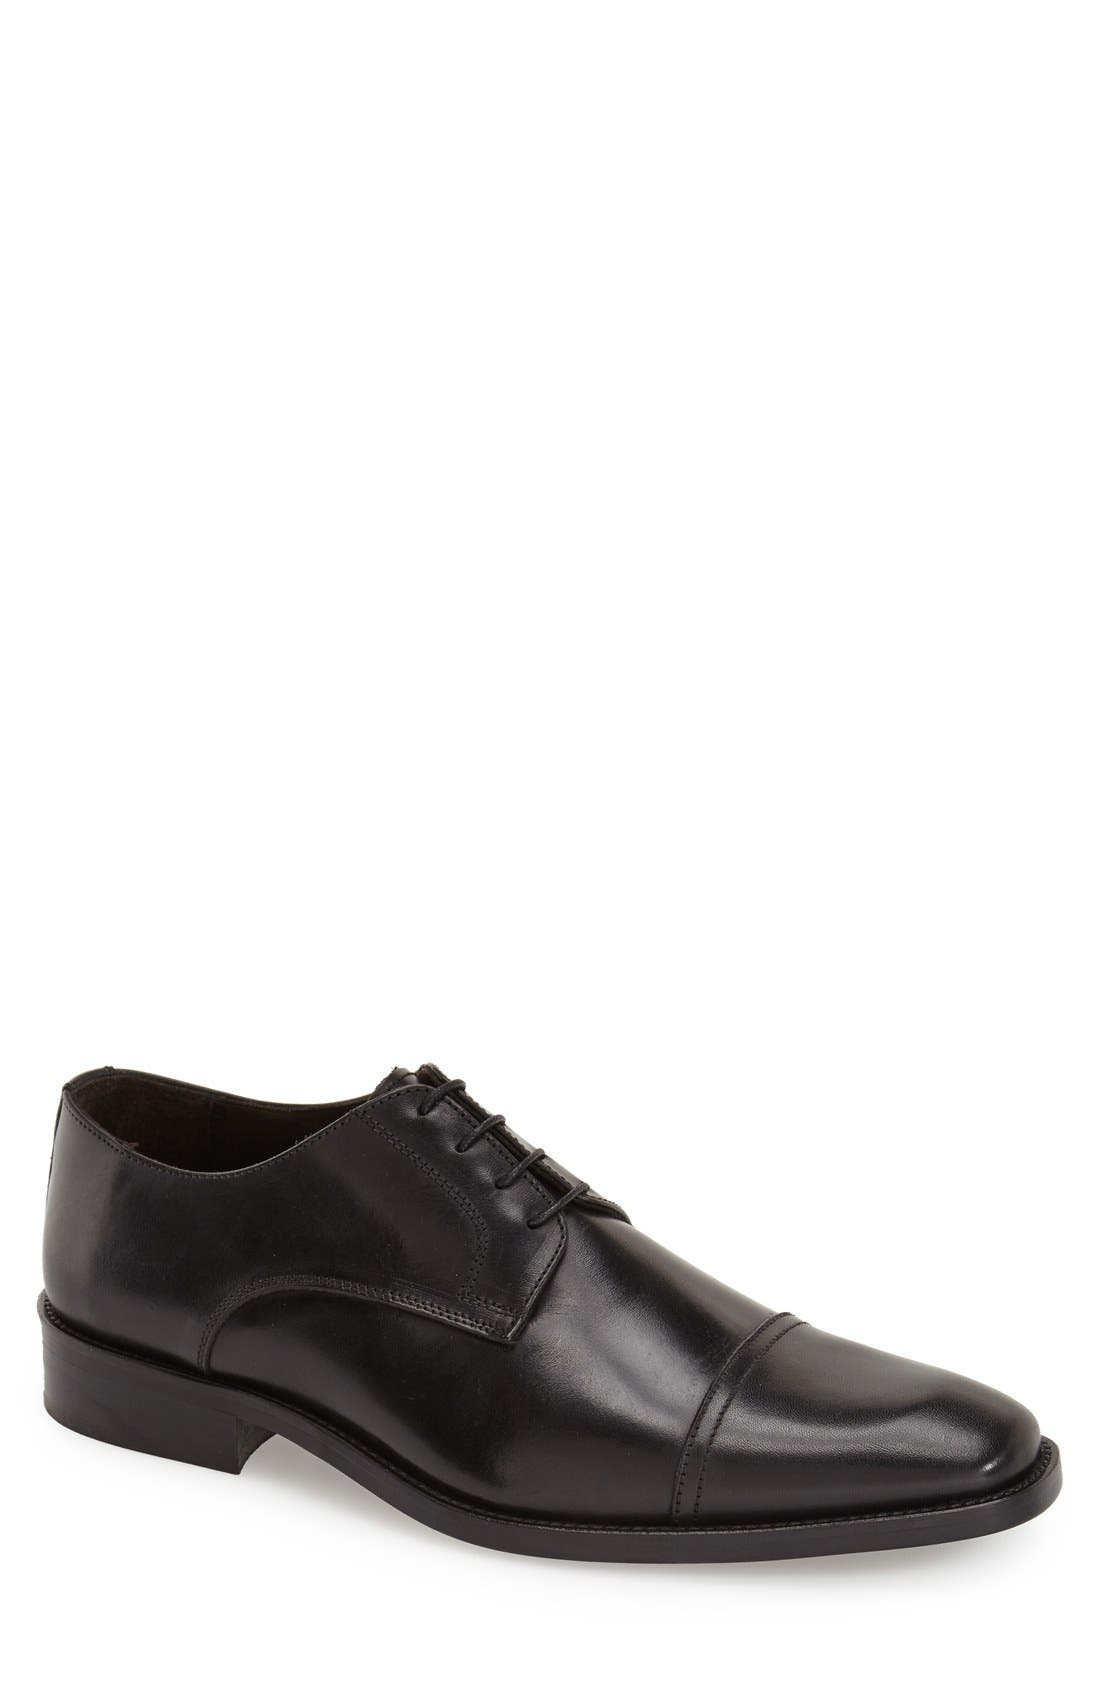 'Maxwell' Cap Toe Derby,                             Main thumbnail 1, color,                             001